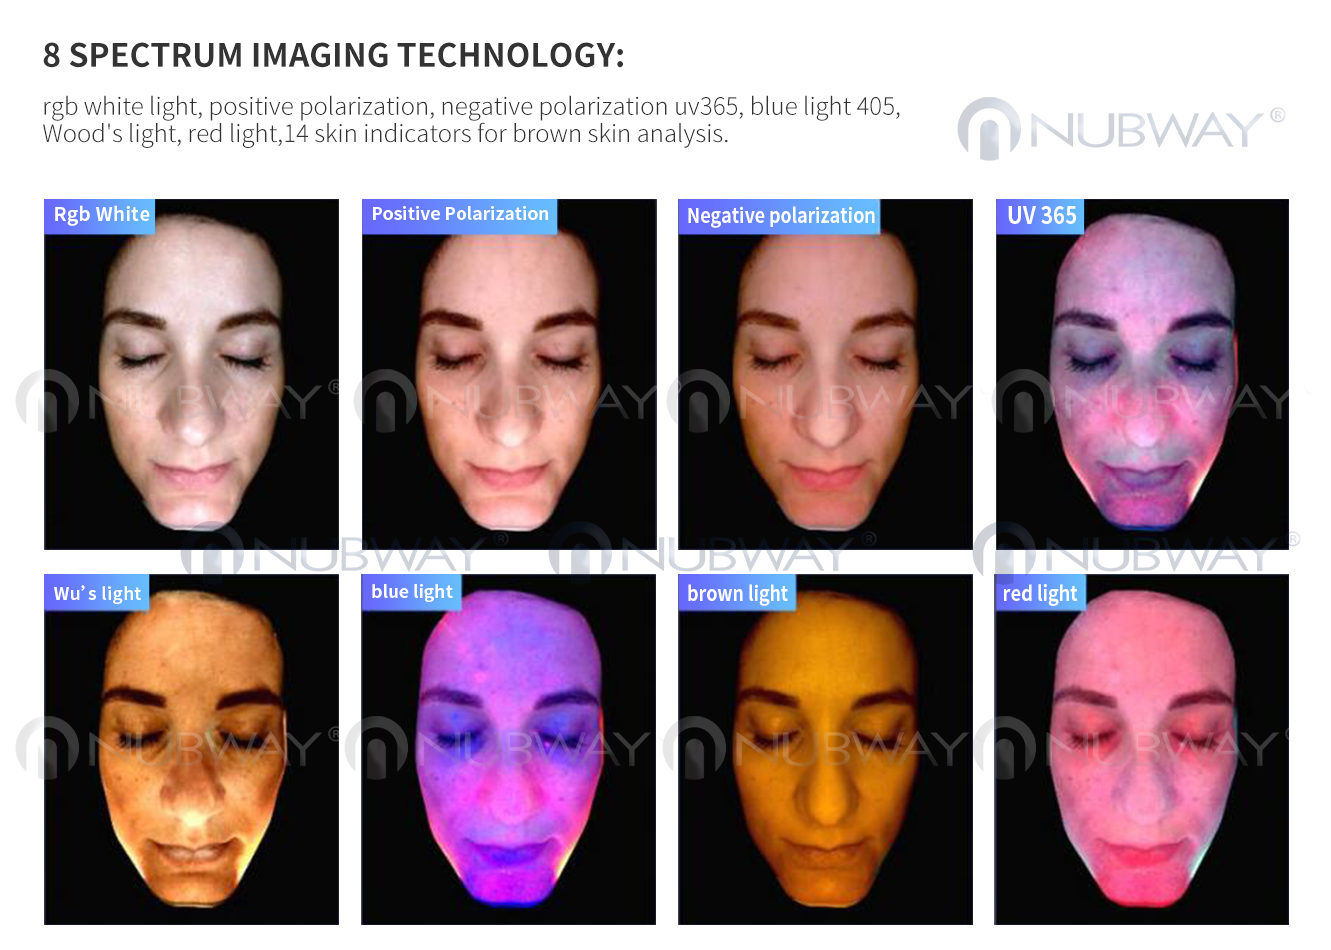 World's Toppest 2m Pixels Facial Moisture Digital 3d Skin Scanner Analyzer For Beauty Spa Use